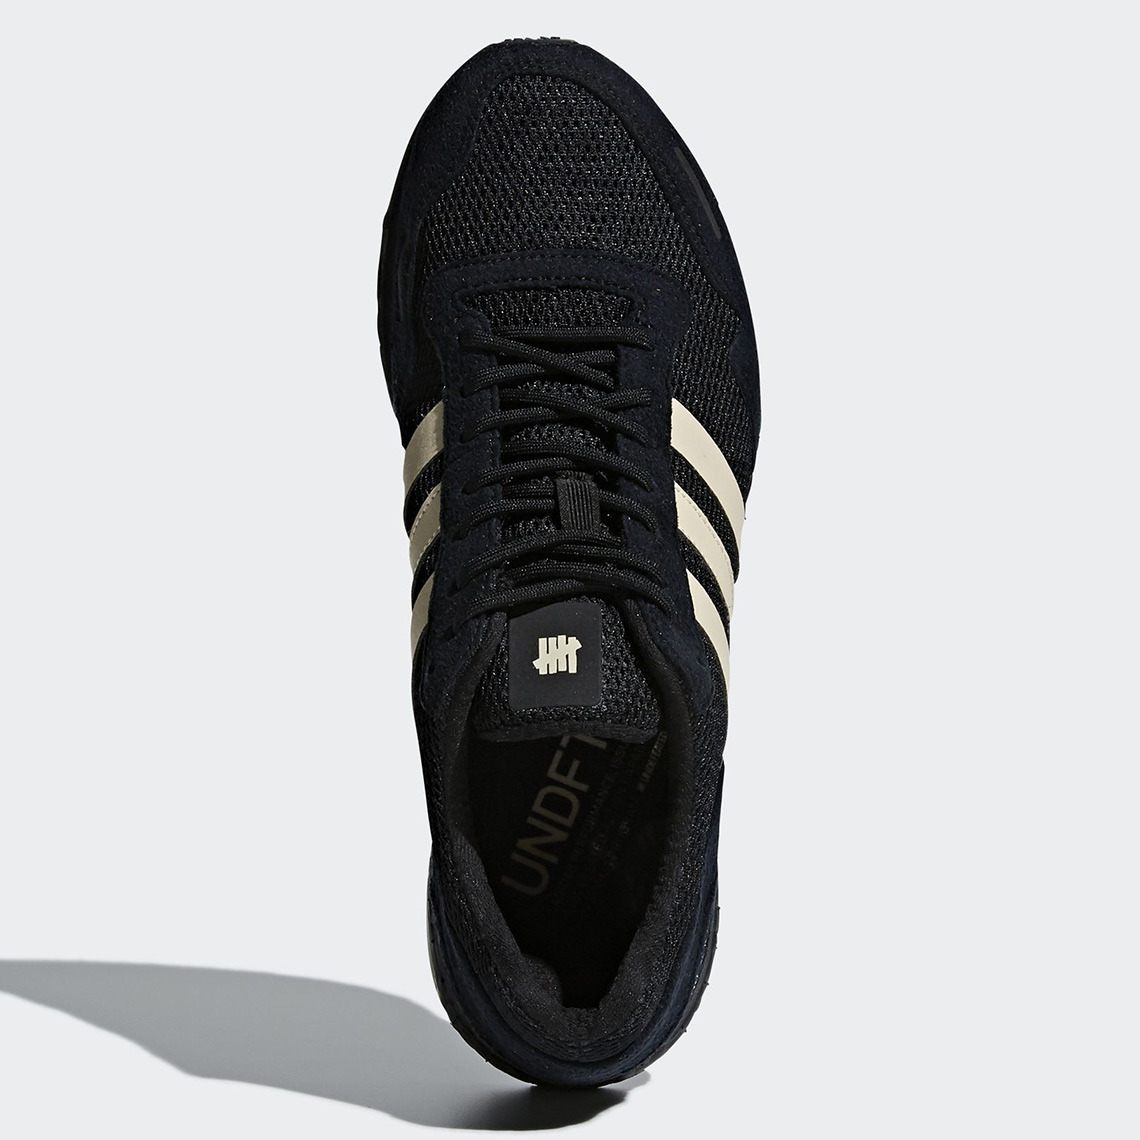 a11d8dbd0 Undefeated adidas Ultra Boost adios 3 Release Date + Photos ...